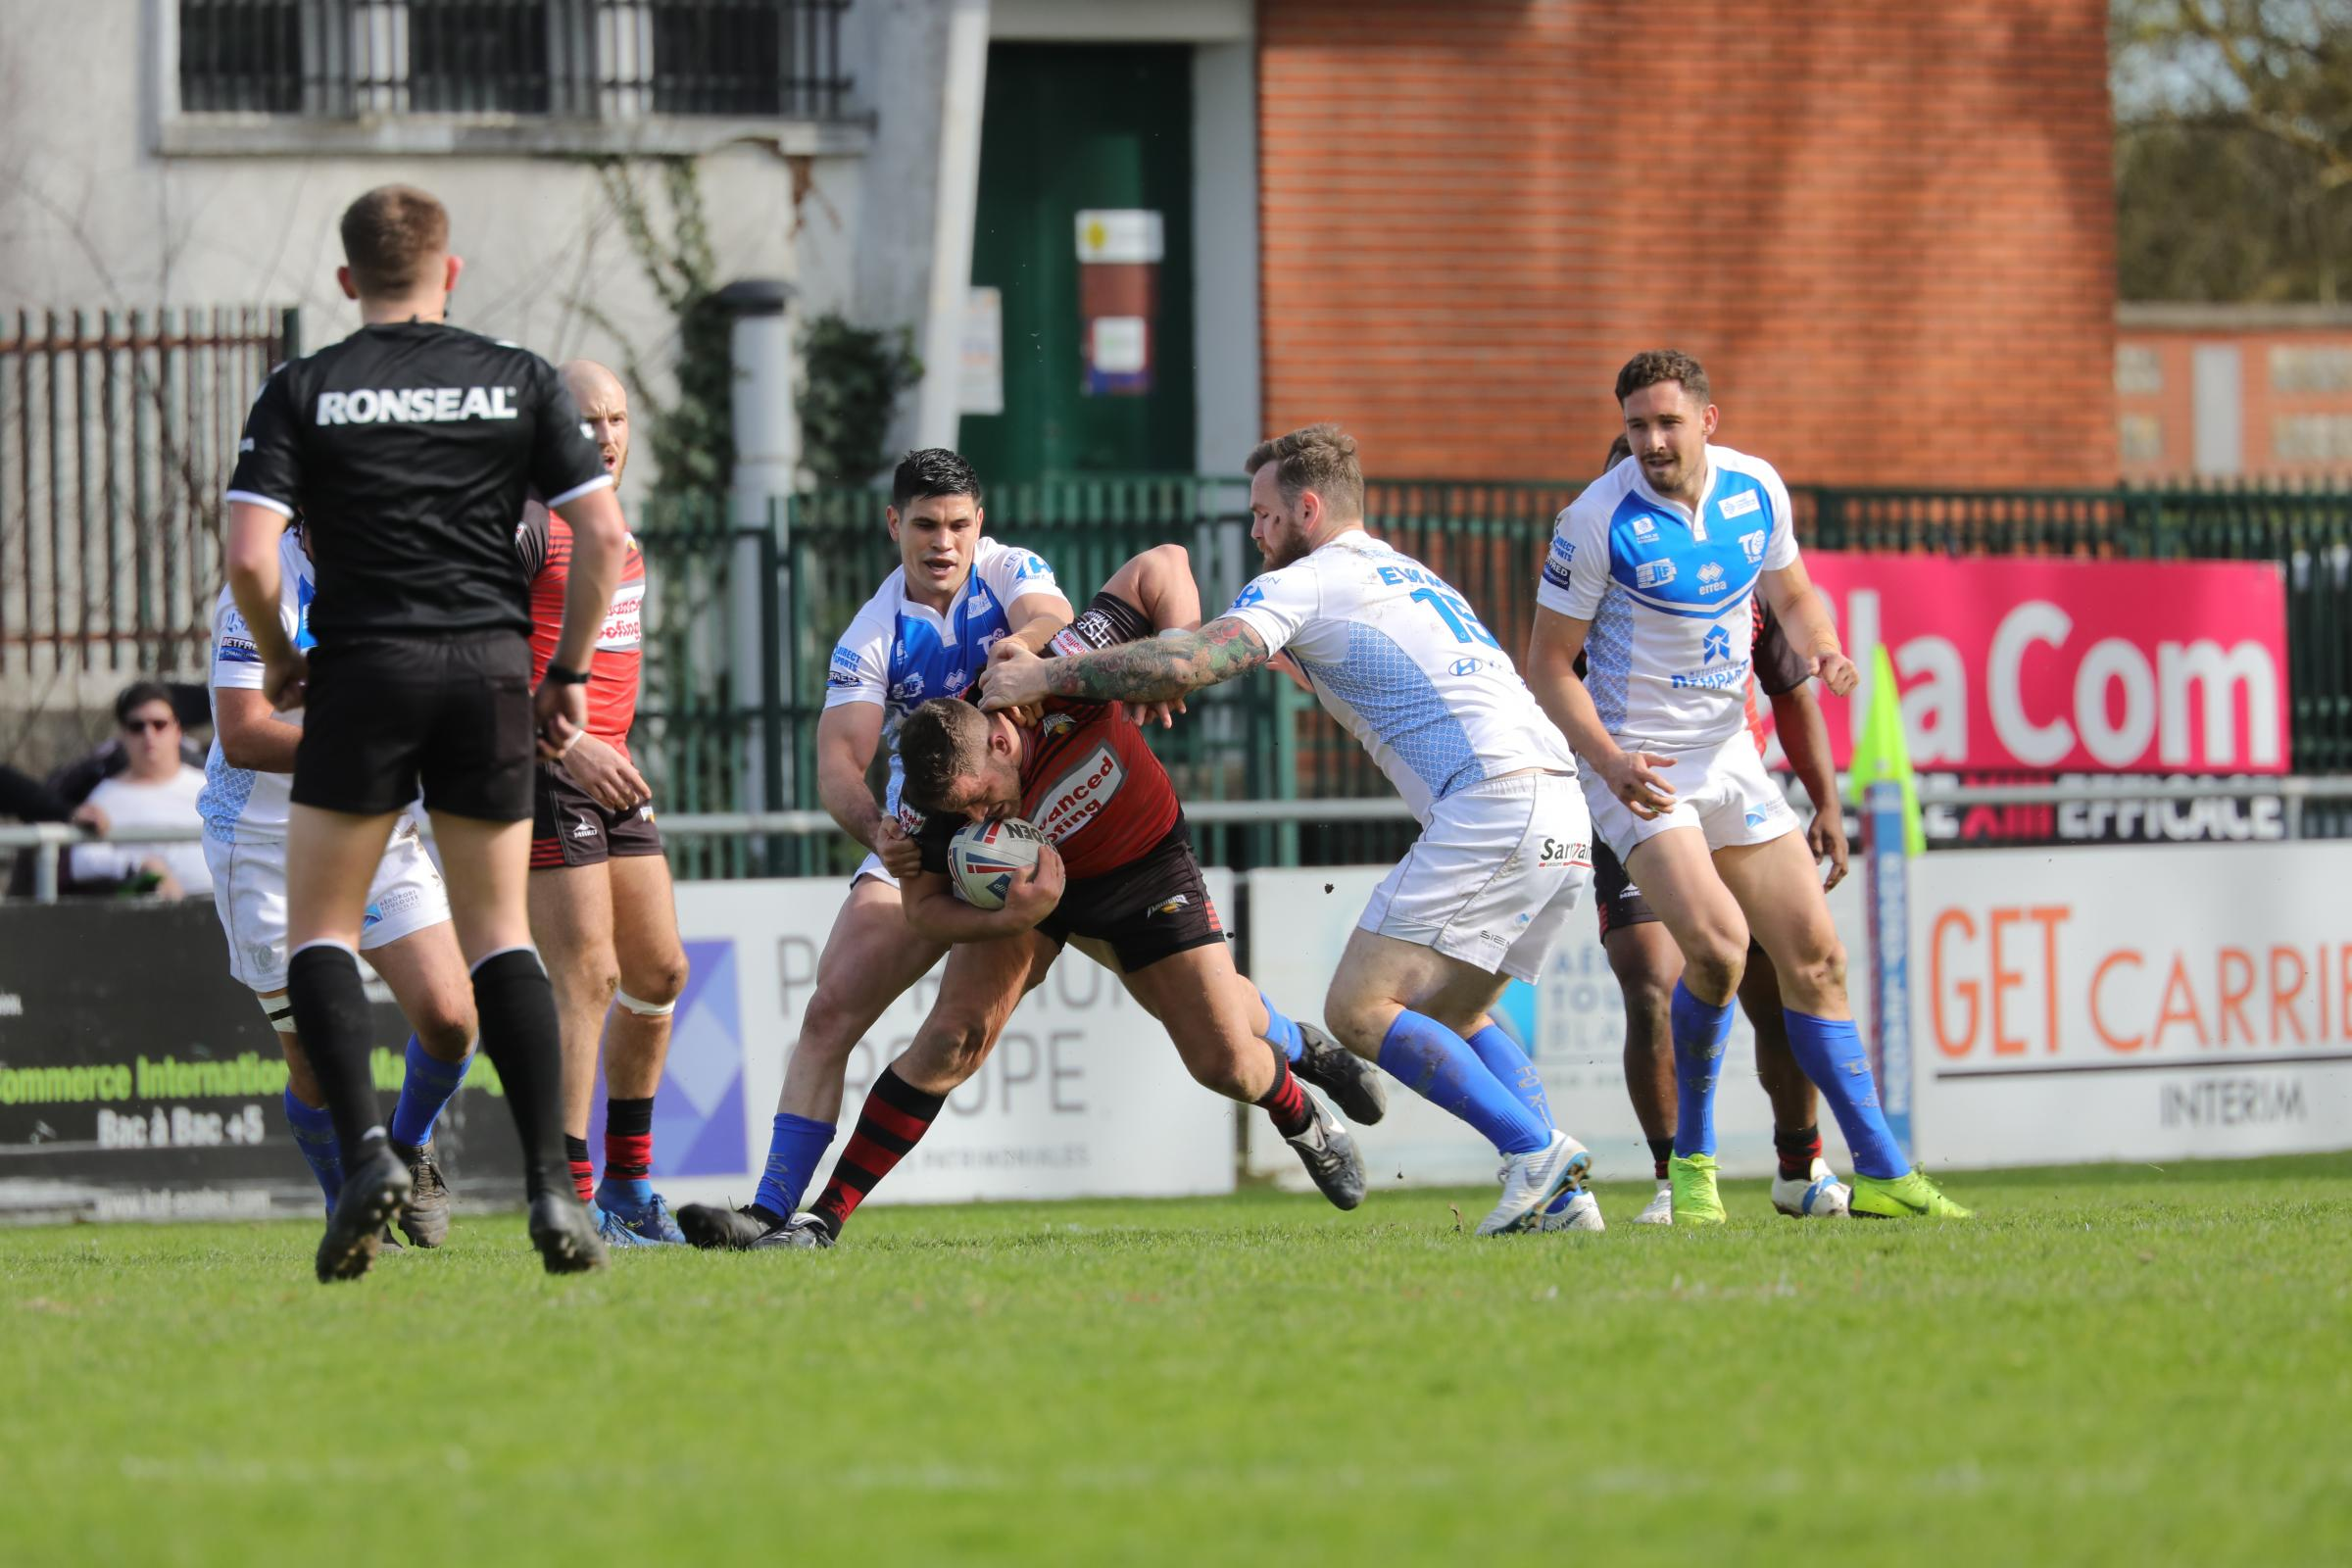 Barrow Raiders endured a tough day away to Toulouse Olympique last Saturday Picture: Bernard Rieu